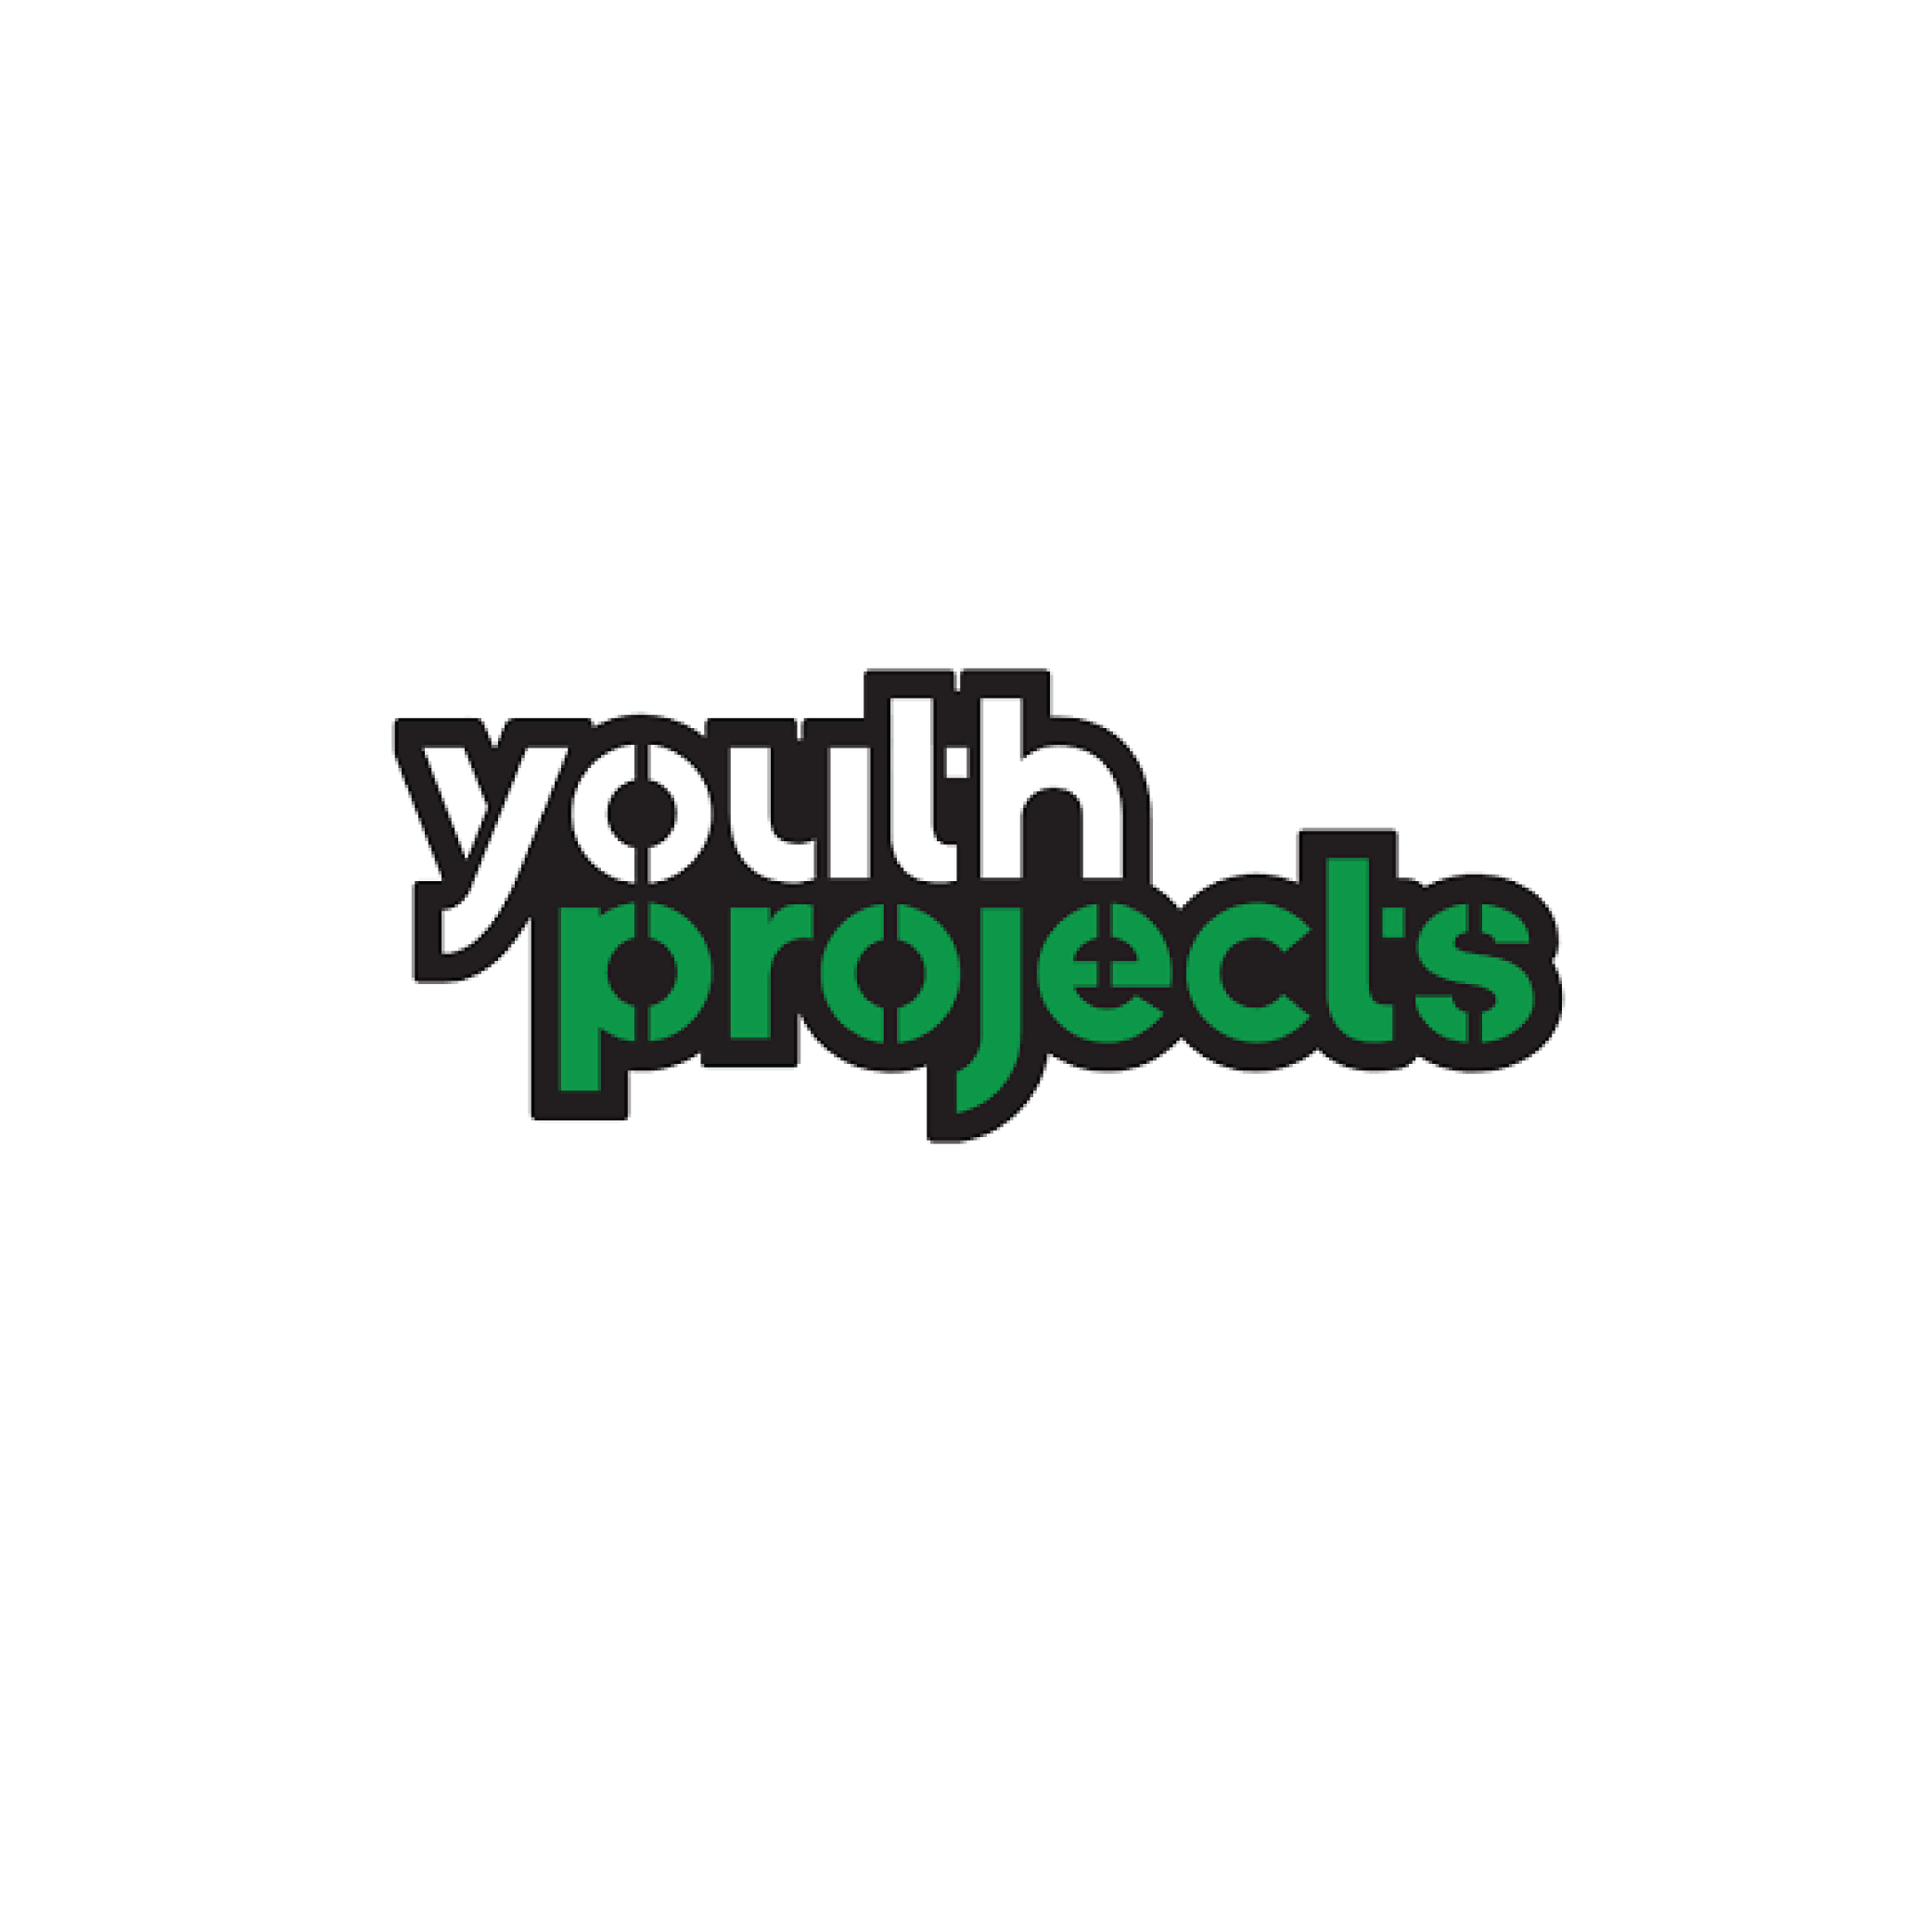 Youth Projects-01.png